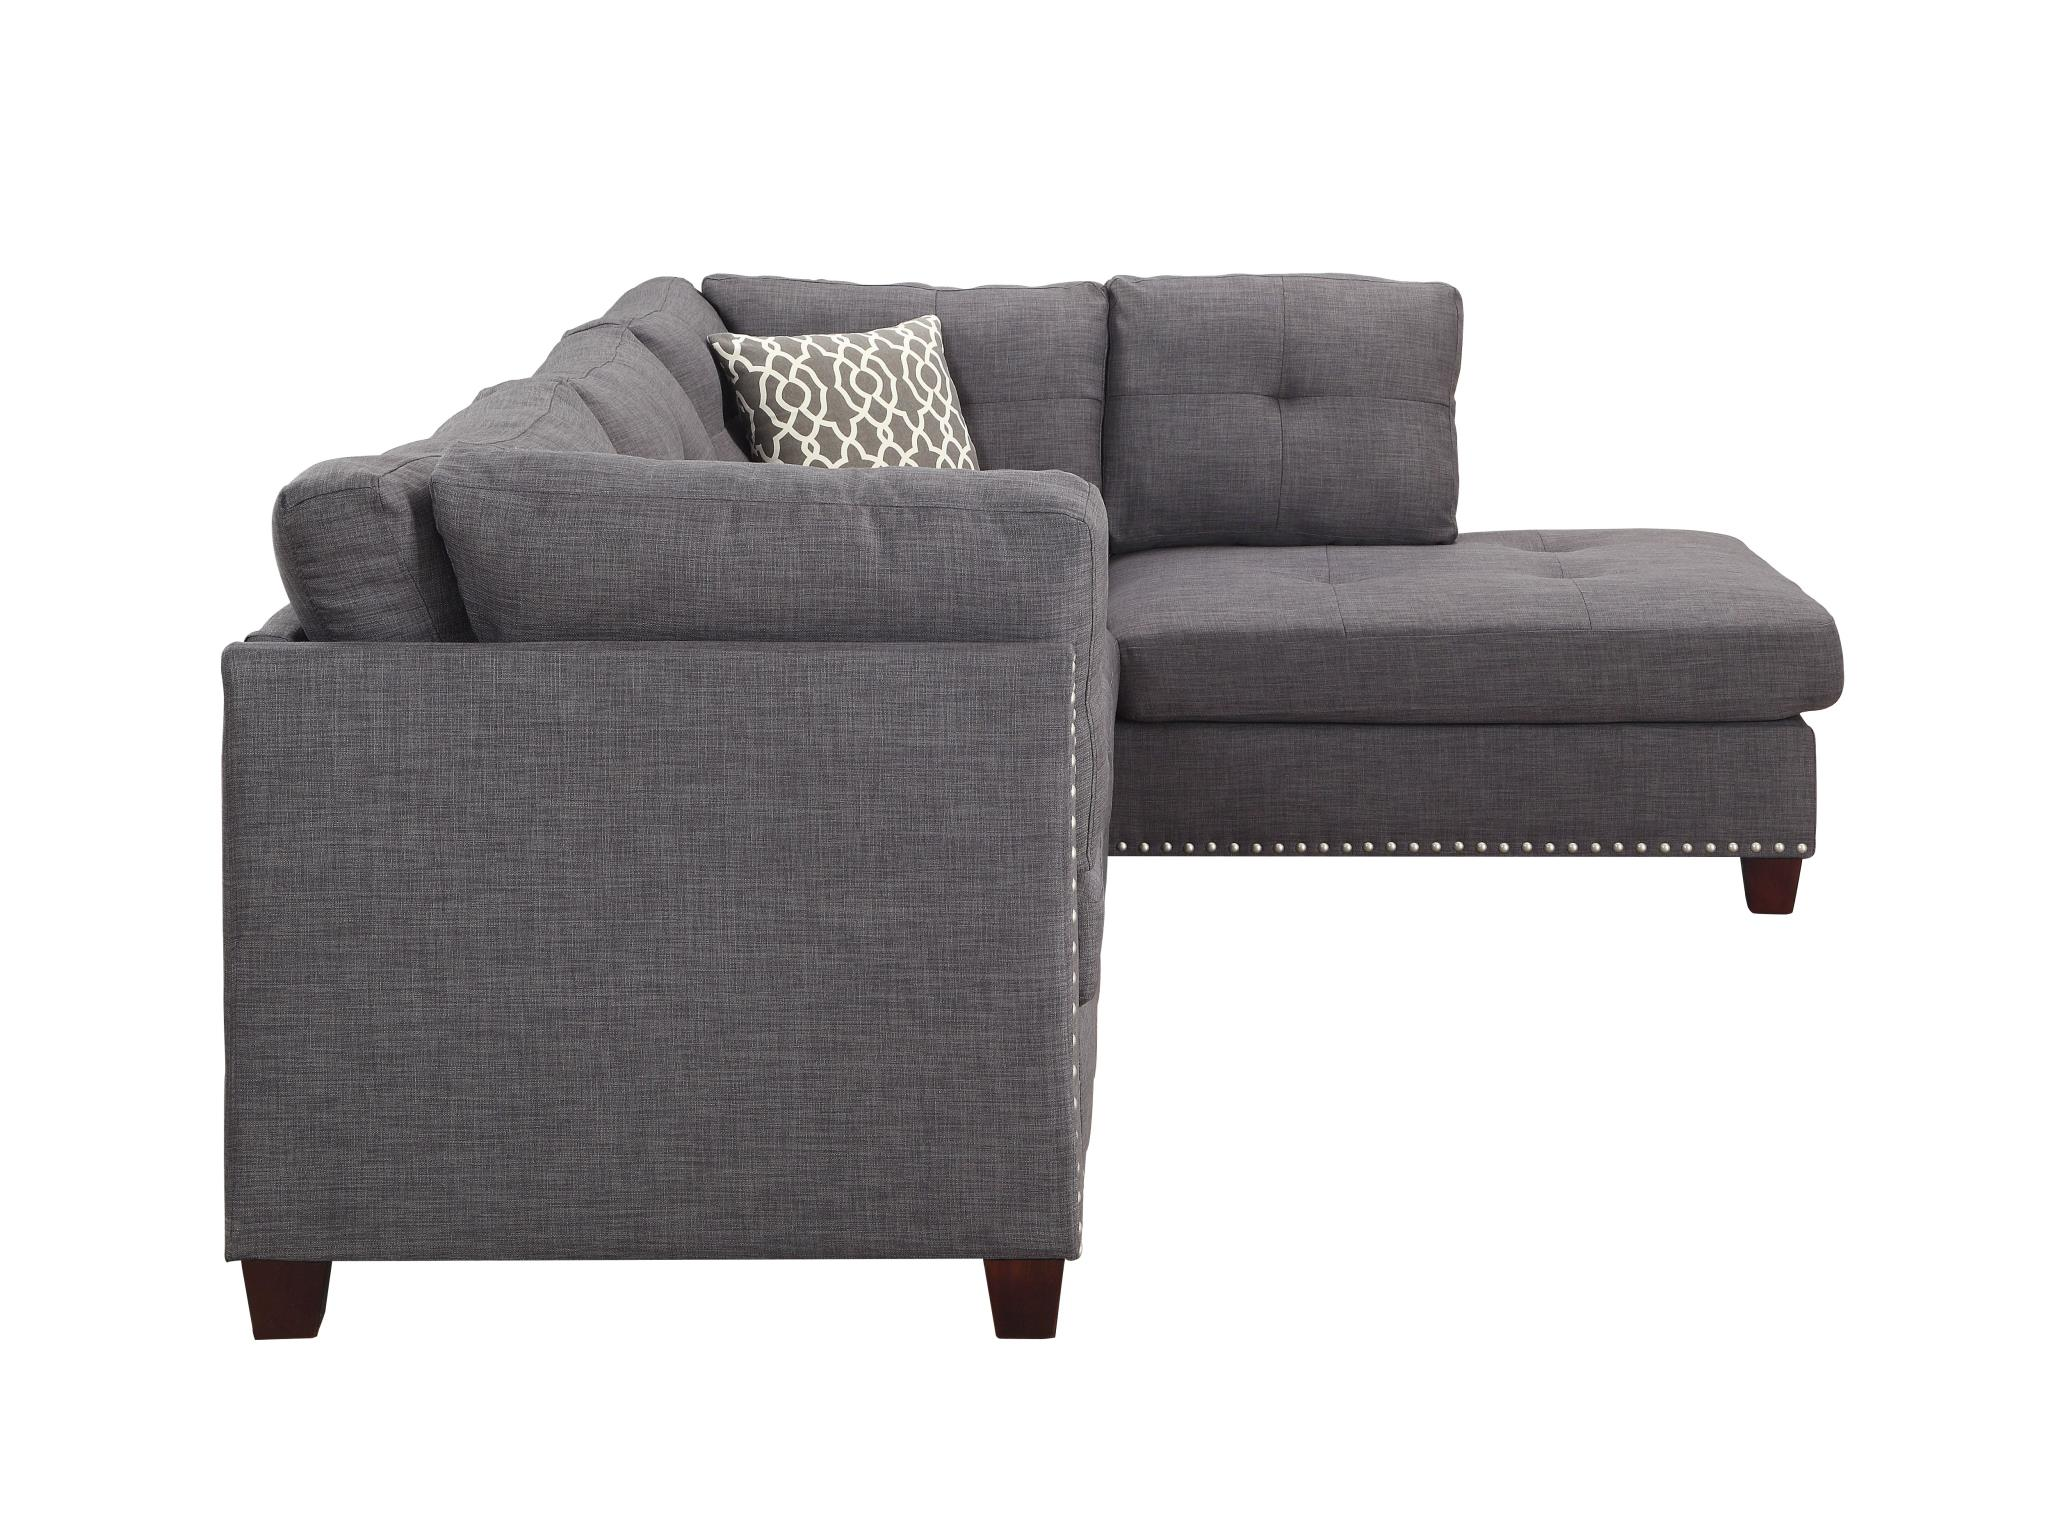 Sectional Sofa w/ Right Facing Chaise Side